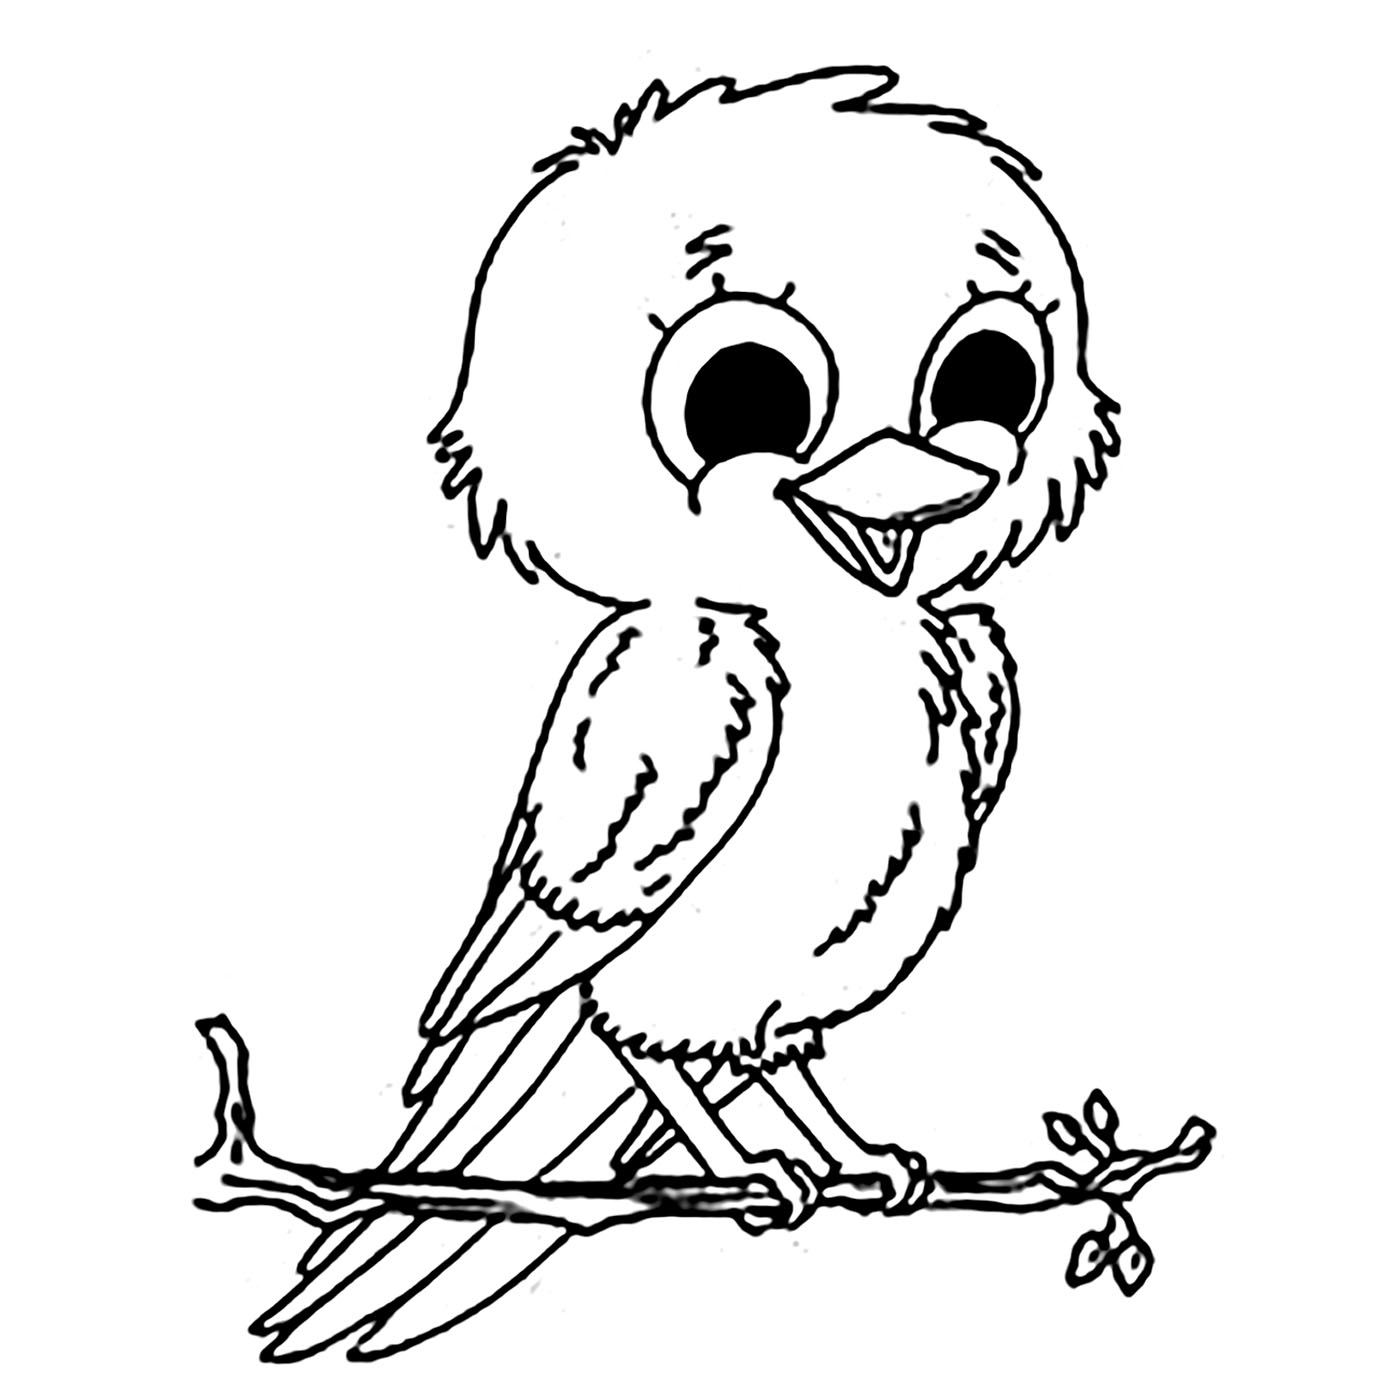 bird colouring pages for kids birds free to color for children birds kids coloring pages for colouring kids bird pages